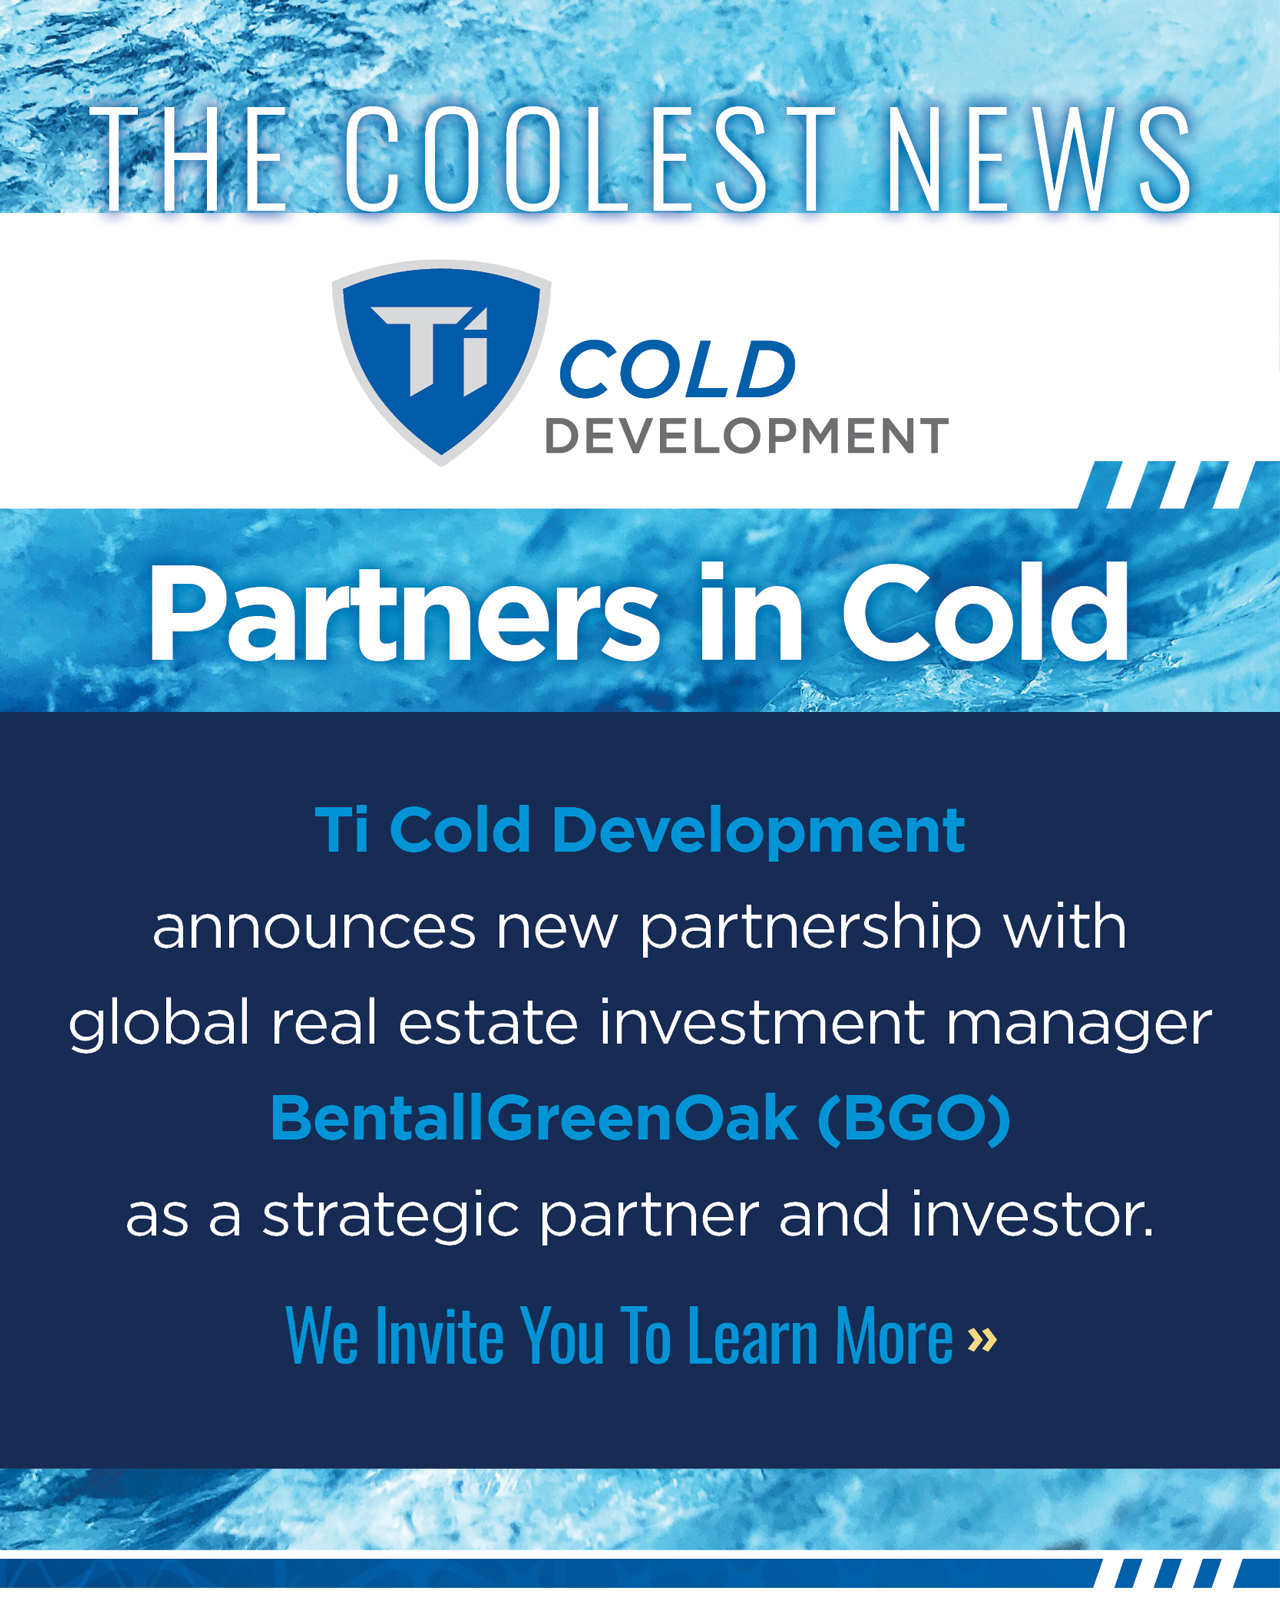 The Coolest News - Partners in Cold - Ti Cold Development announces new partnership with global real estate investment manager BentallGreenOak (BGO) as a strategic partner and investor. We invite you to learn more by clicking here.